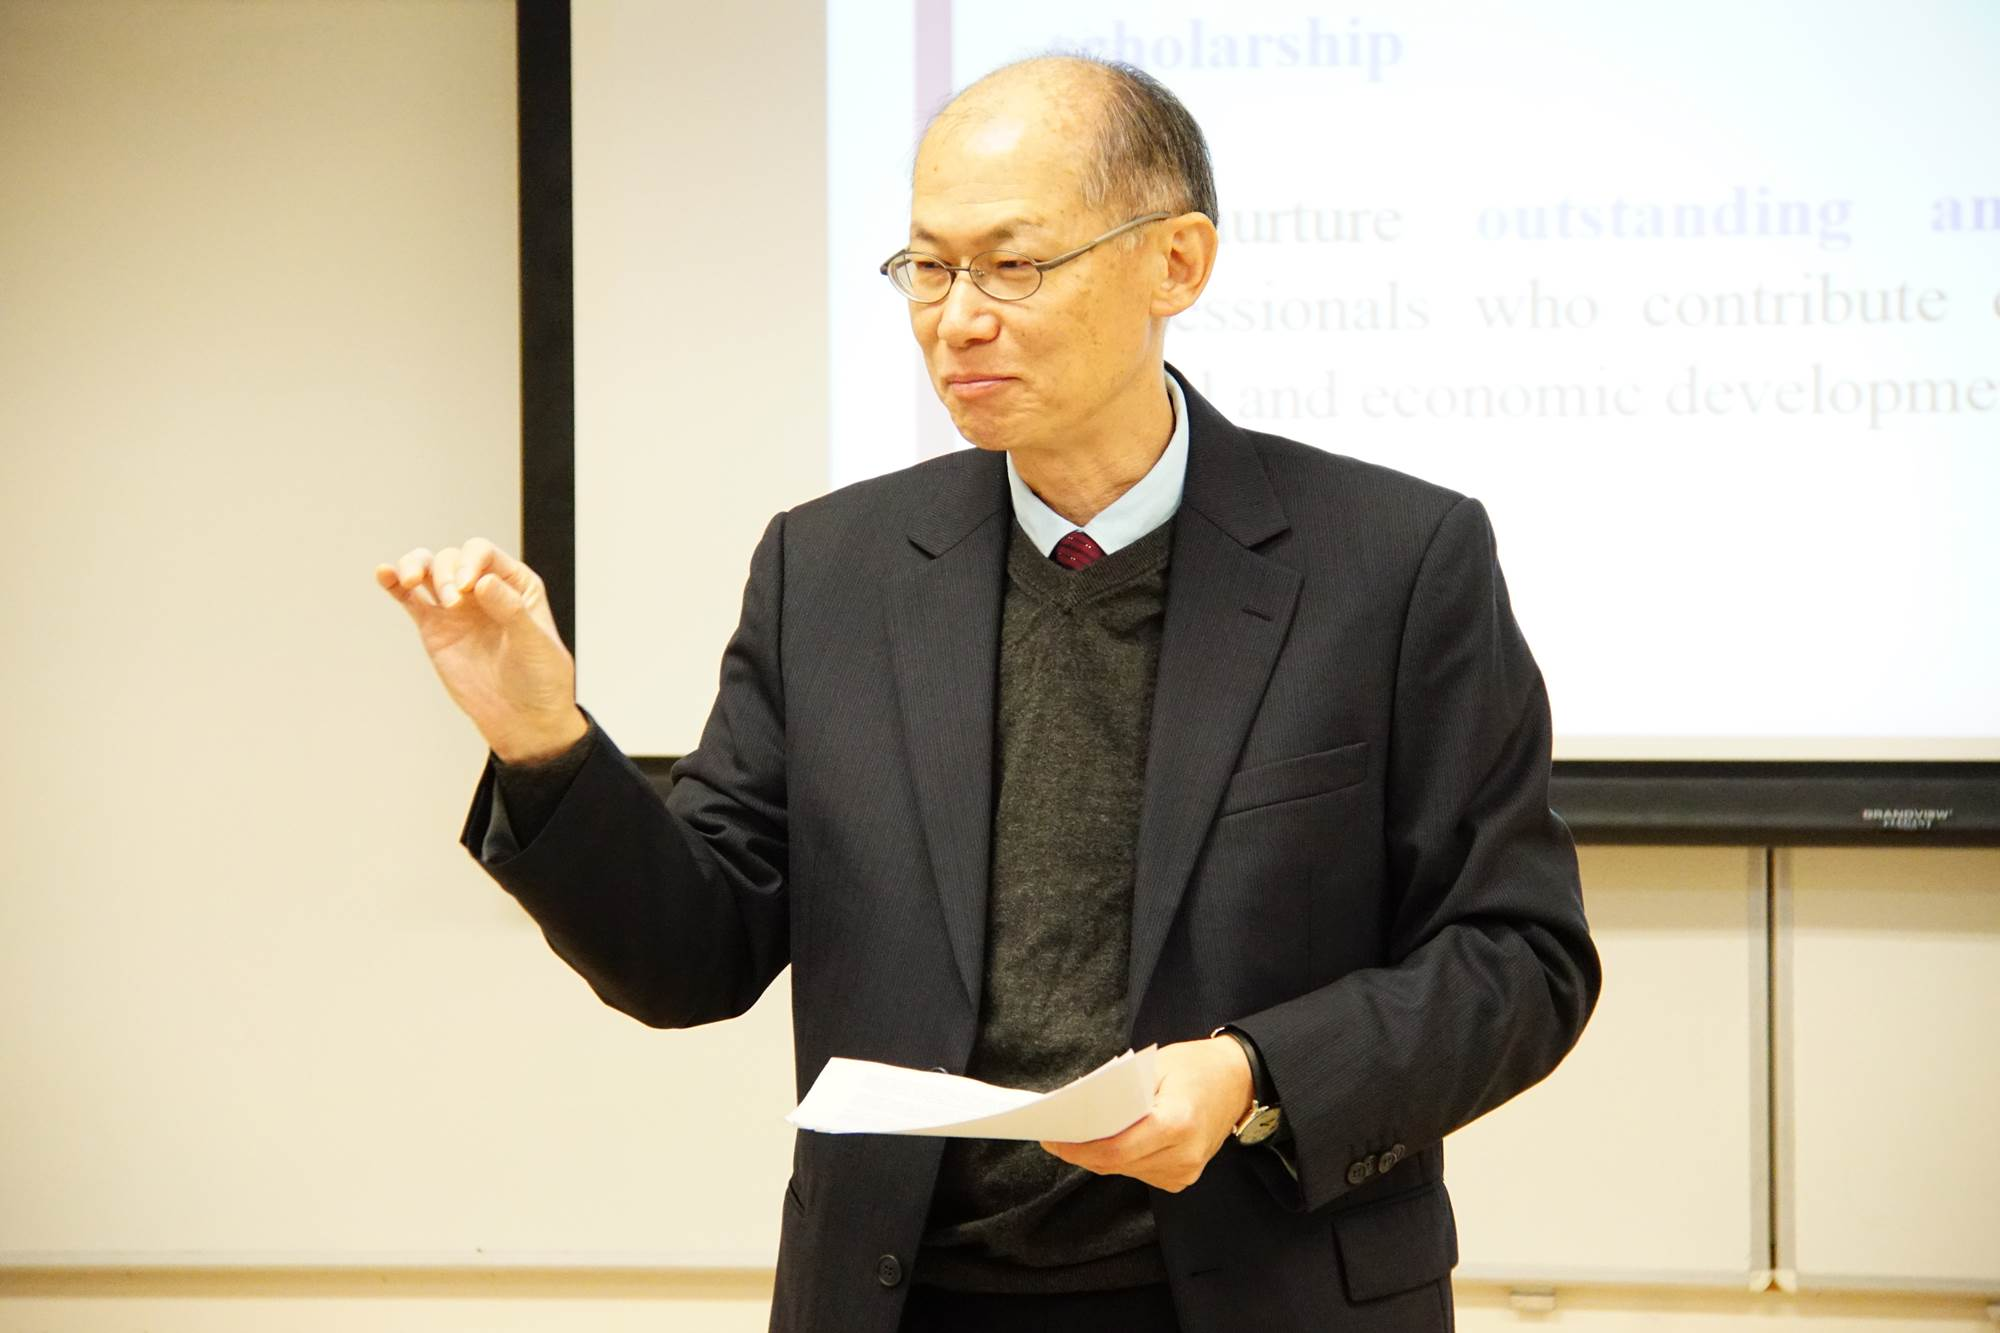 Open lecture by Professor Sing Kai Lo, Education University of Hong Kong